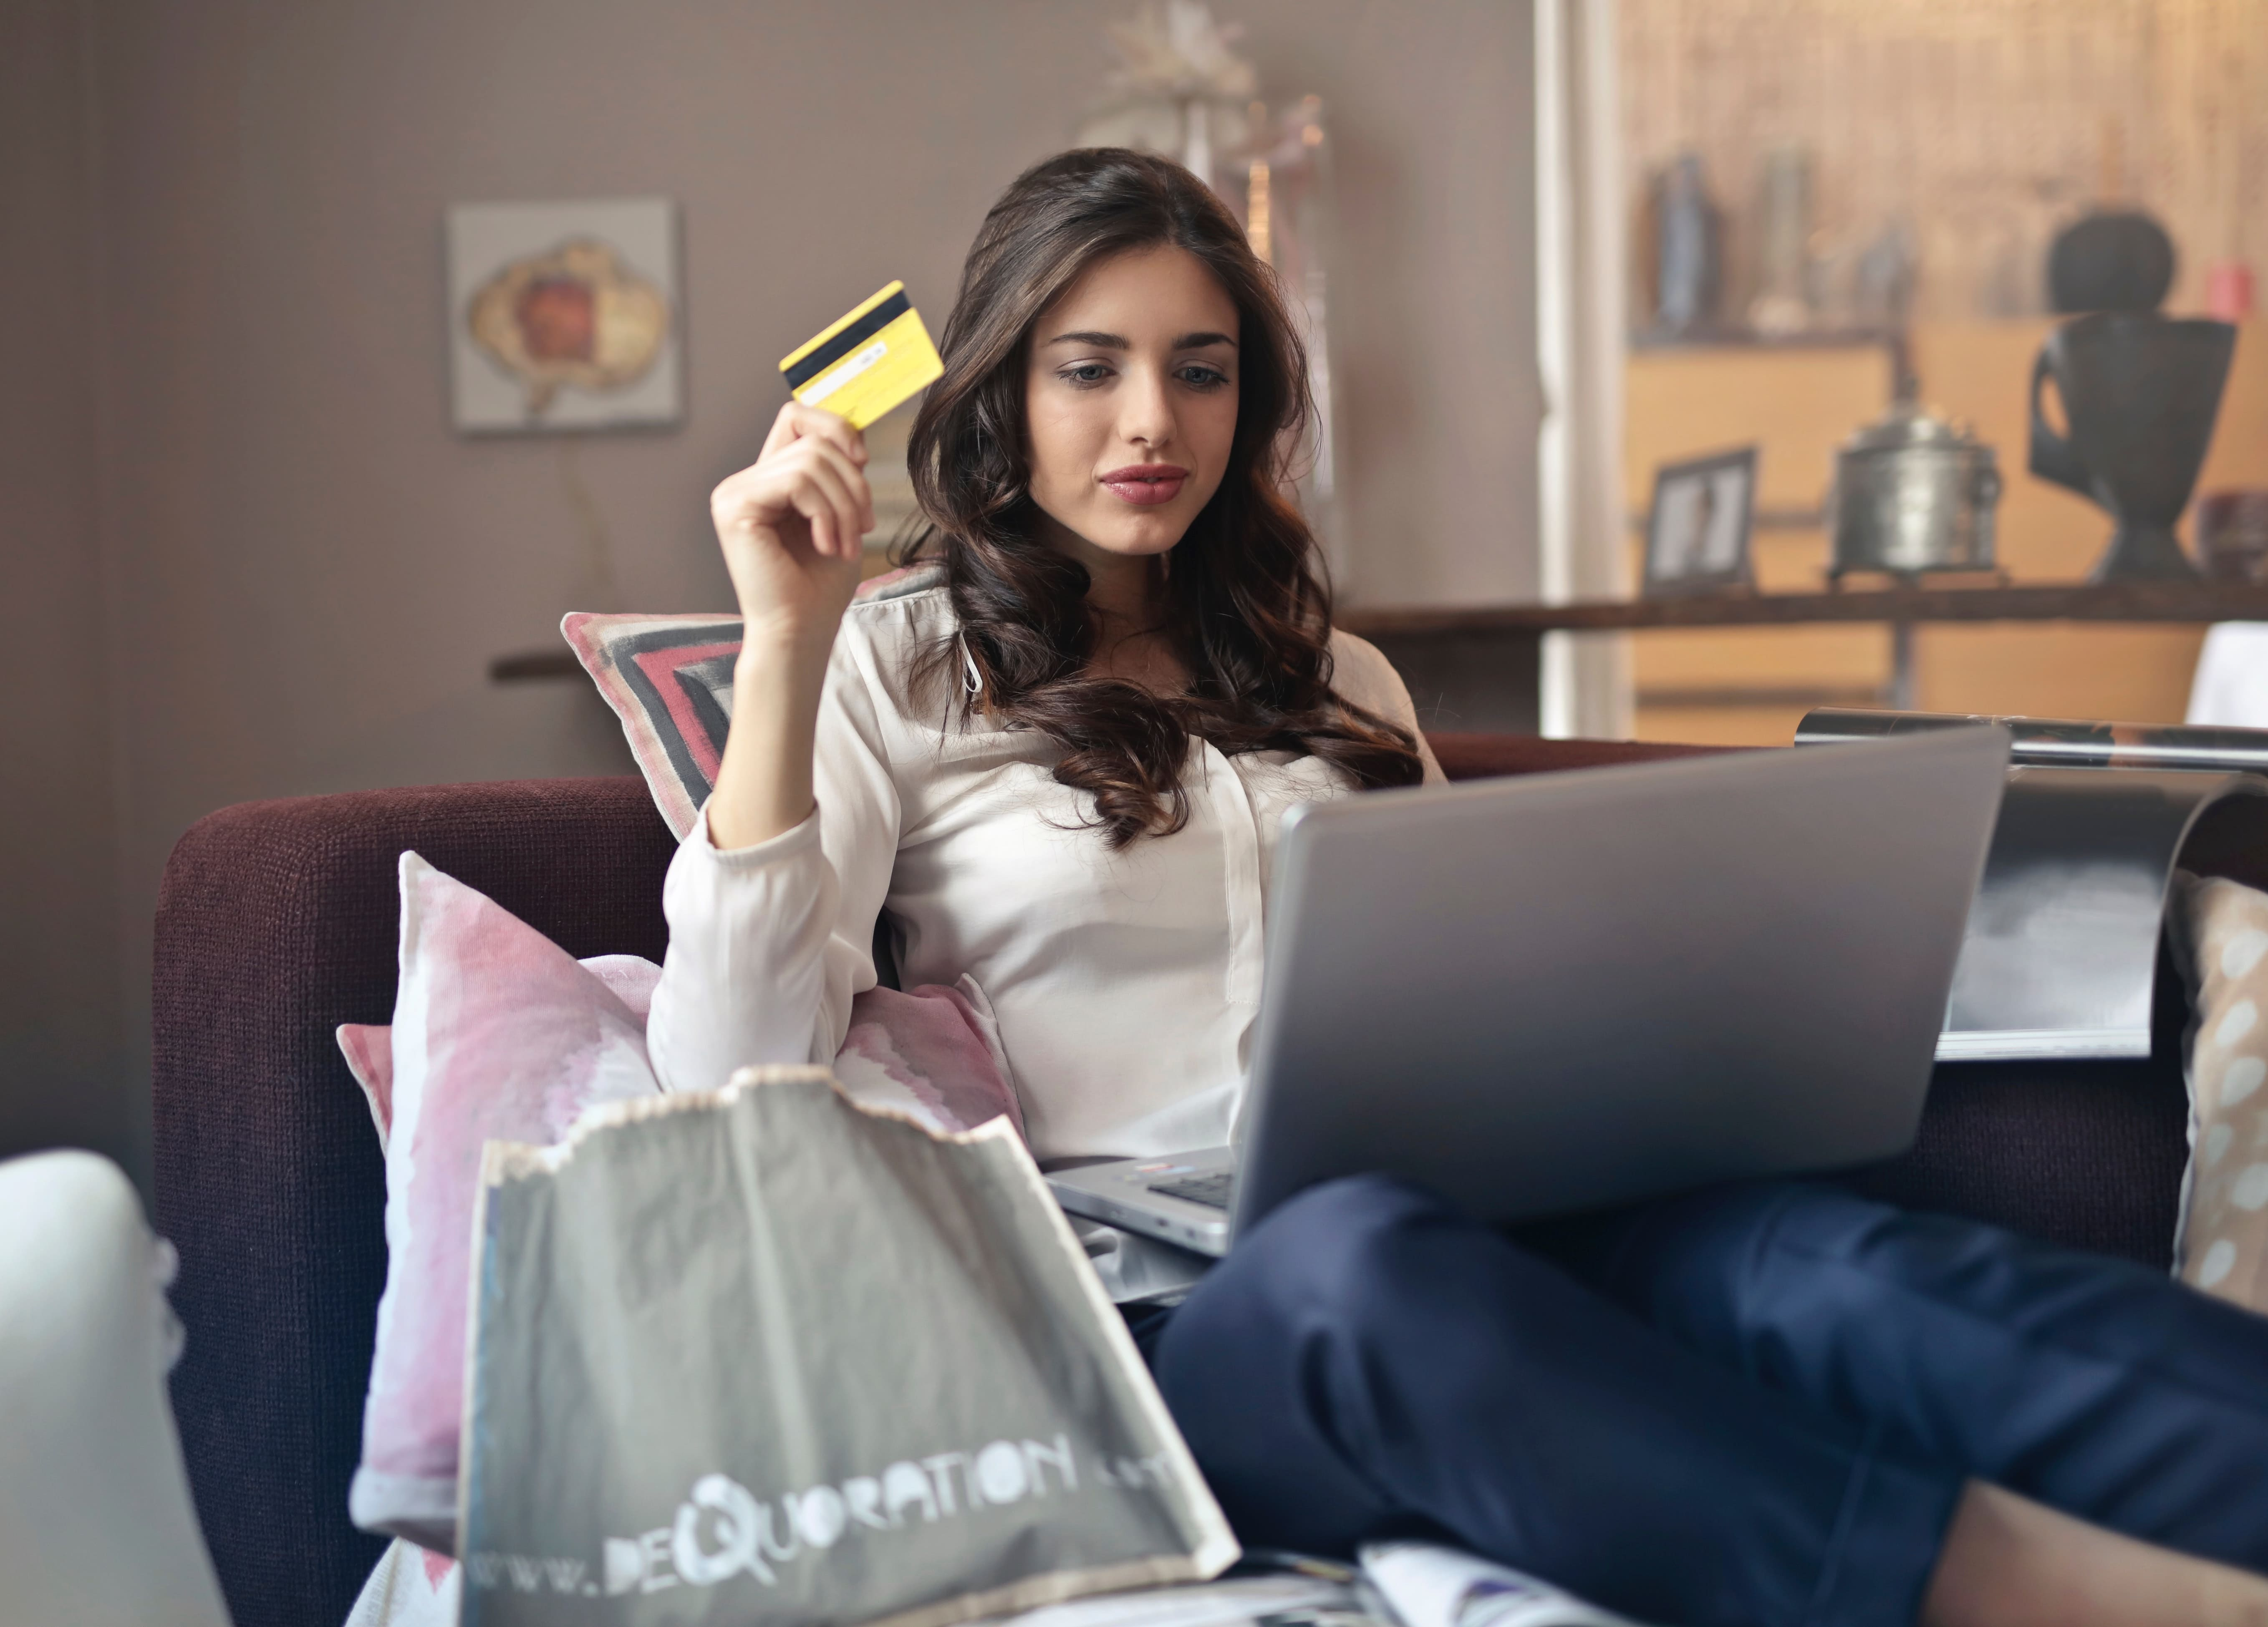 Woman On Laptop With Card In Hand